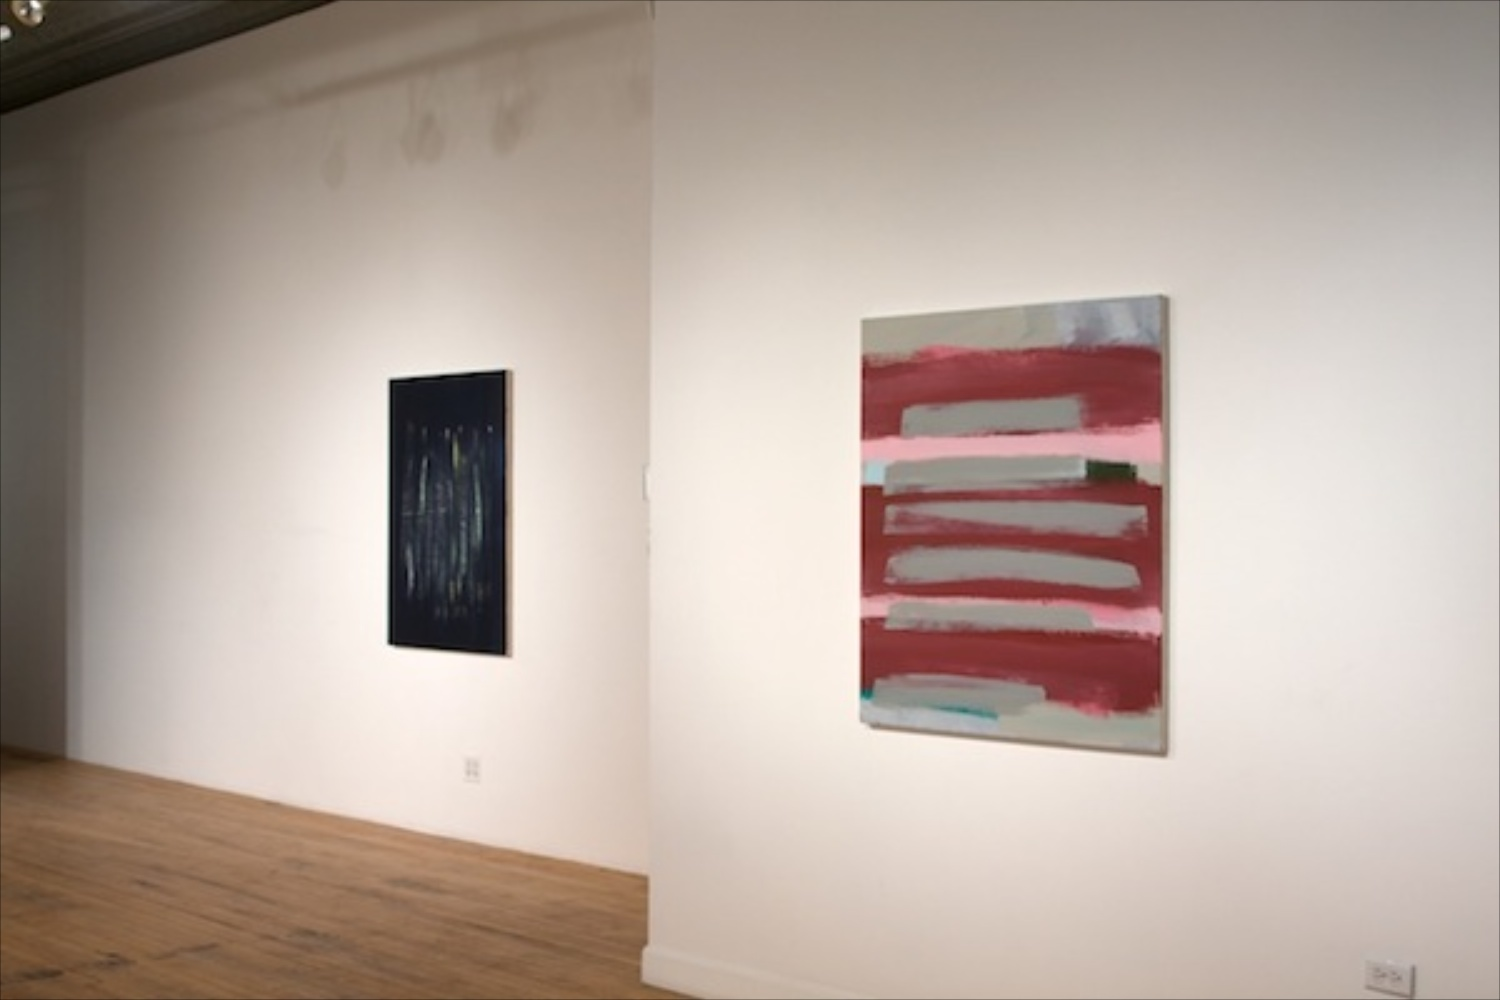 Ann Craven, Peter Halley, Jon Pestoni Painting Panel Exhibition 2010 Shane Campbell Gallery, Chicago Installation View